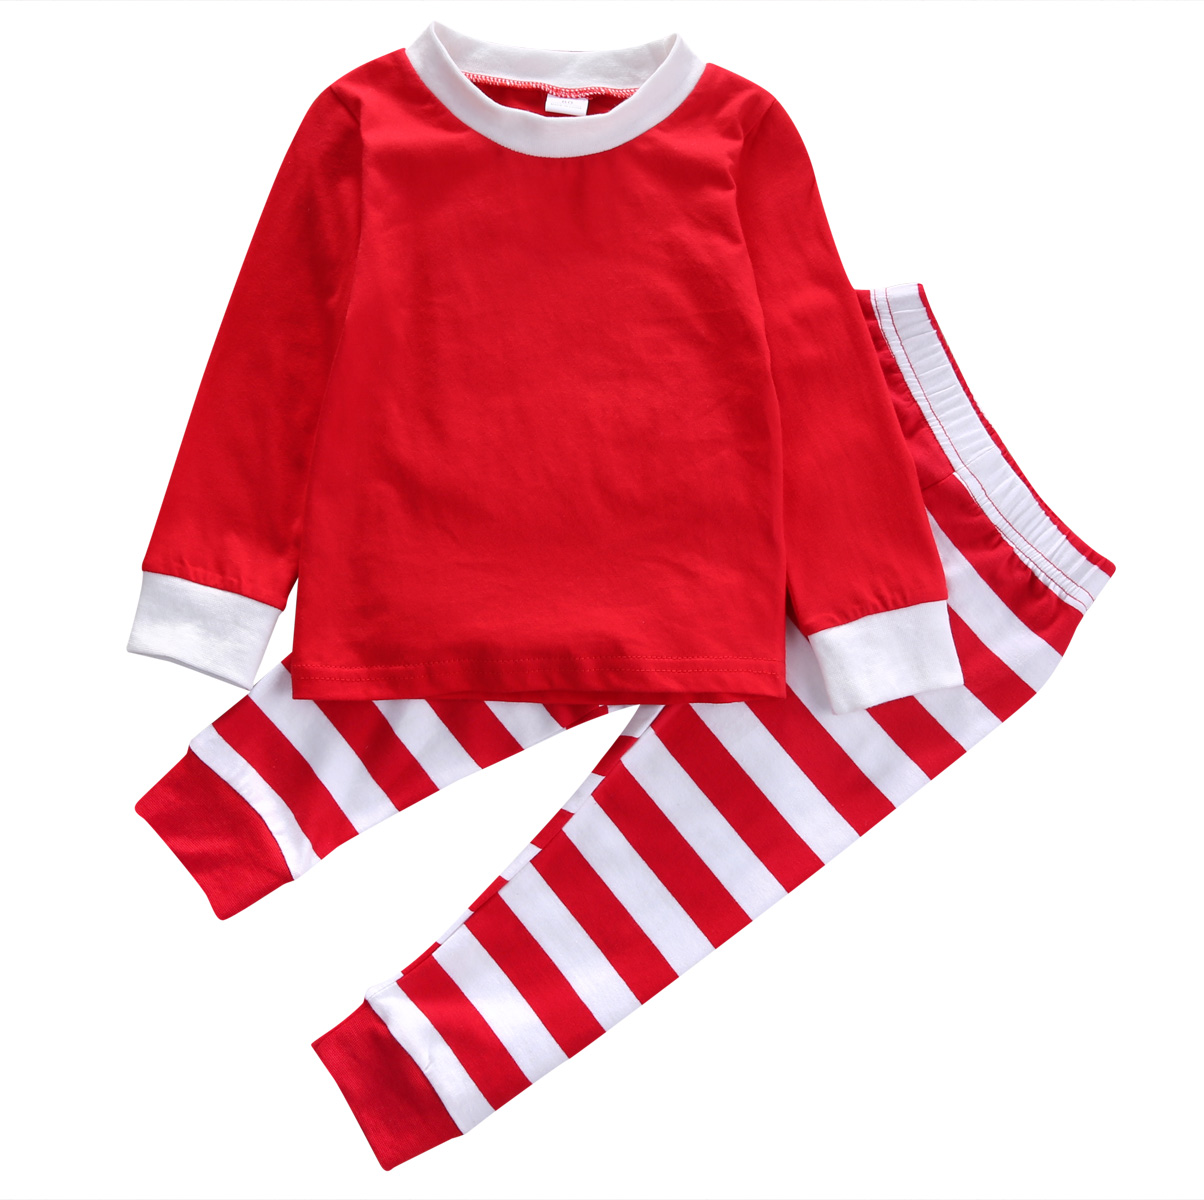 2018 Toddler Kids Baby Boy Girls Striped Outfits Christmas ...